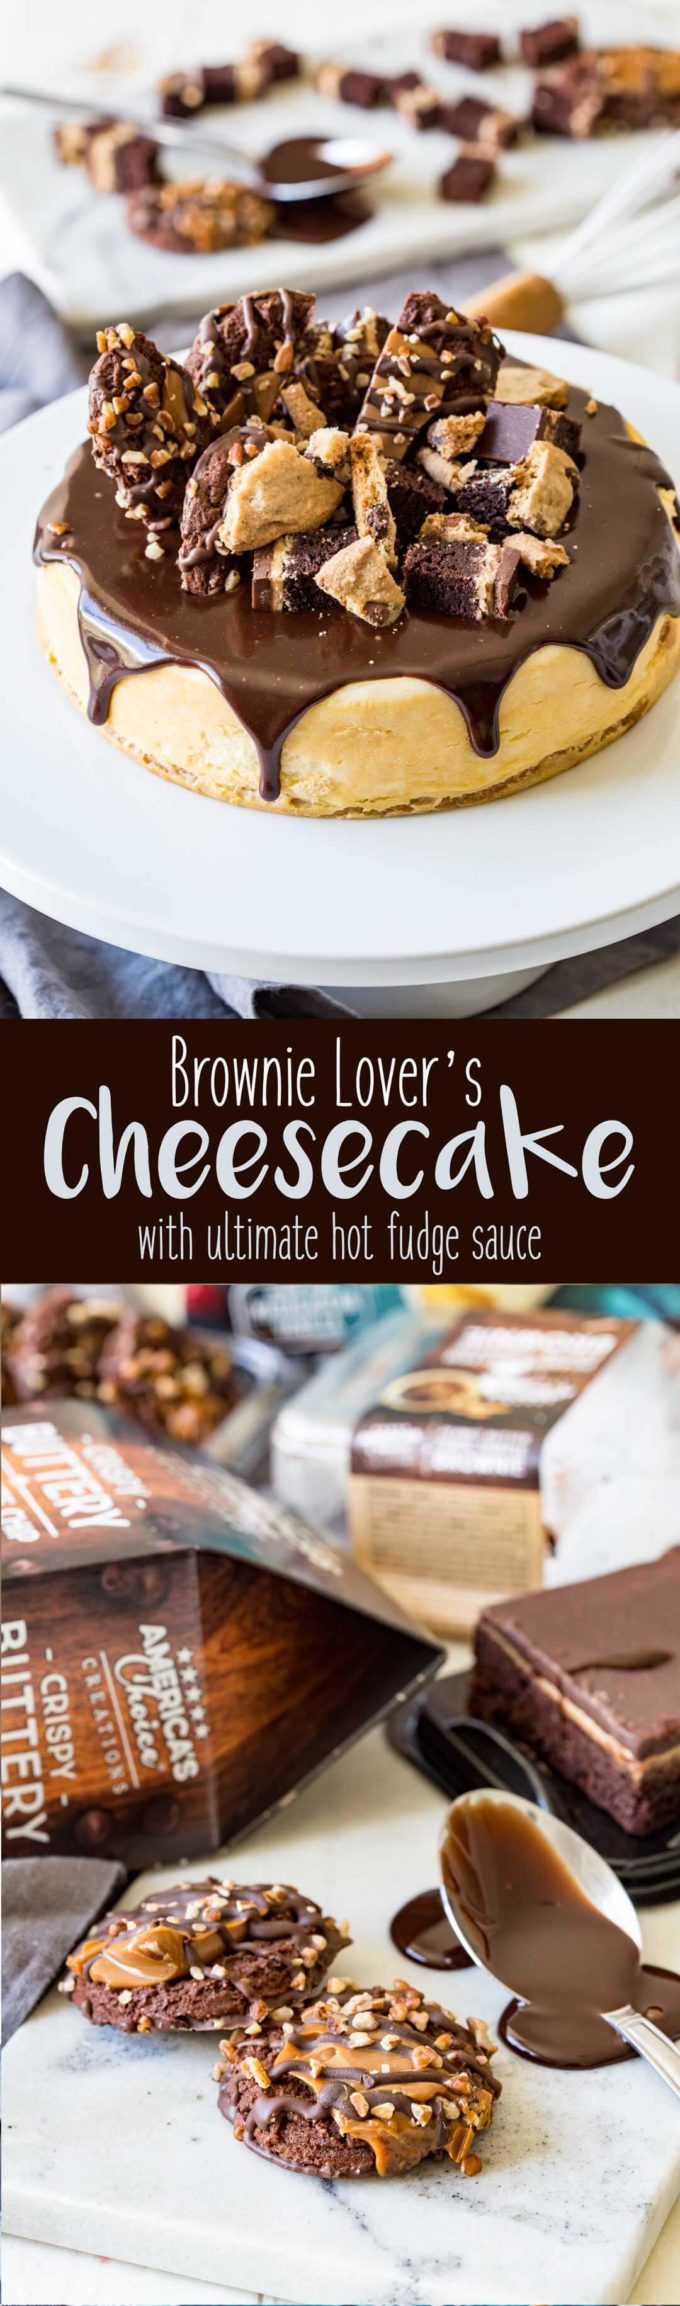 The ultimate easy DESSERT, this brownie lover's cheesecake has the best hot fudge sauce, and comes together in minutes!